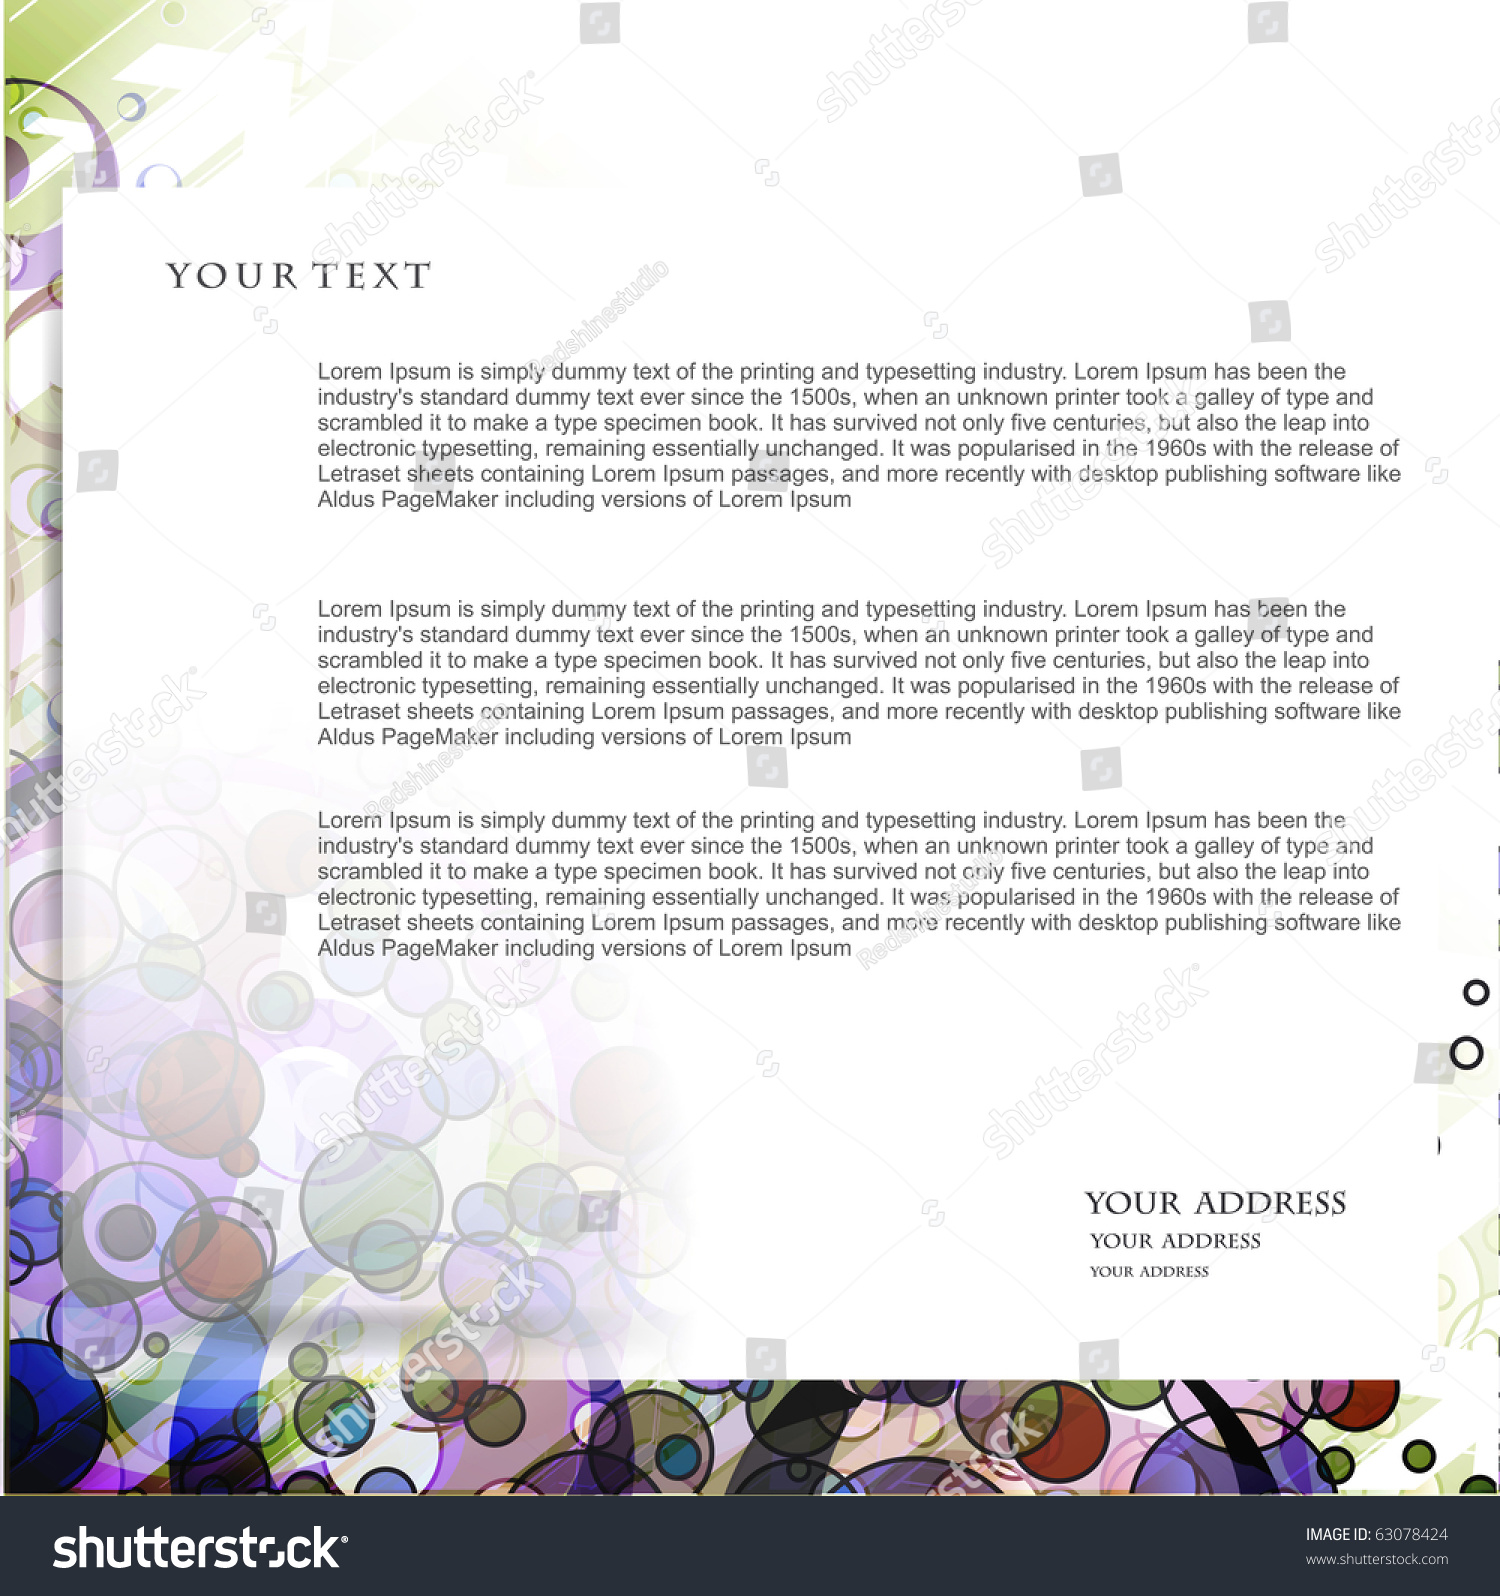 Abstract Business Email Template Design Vector Stock Vector Royalty